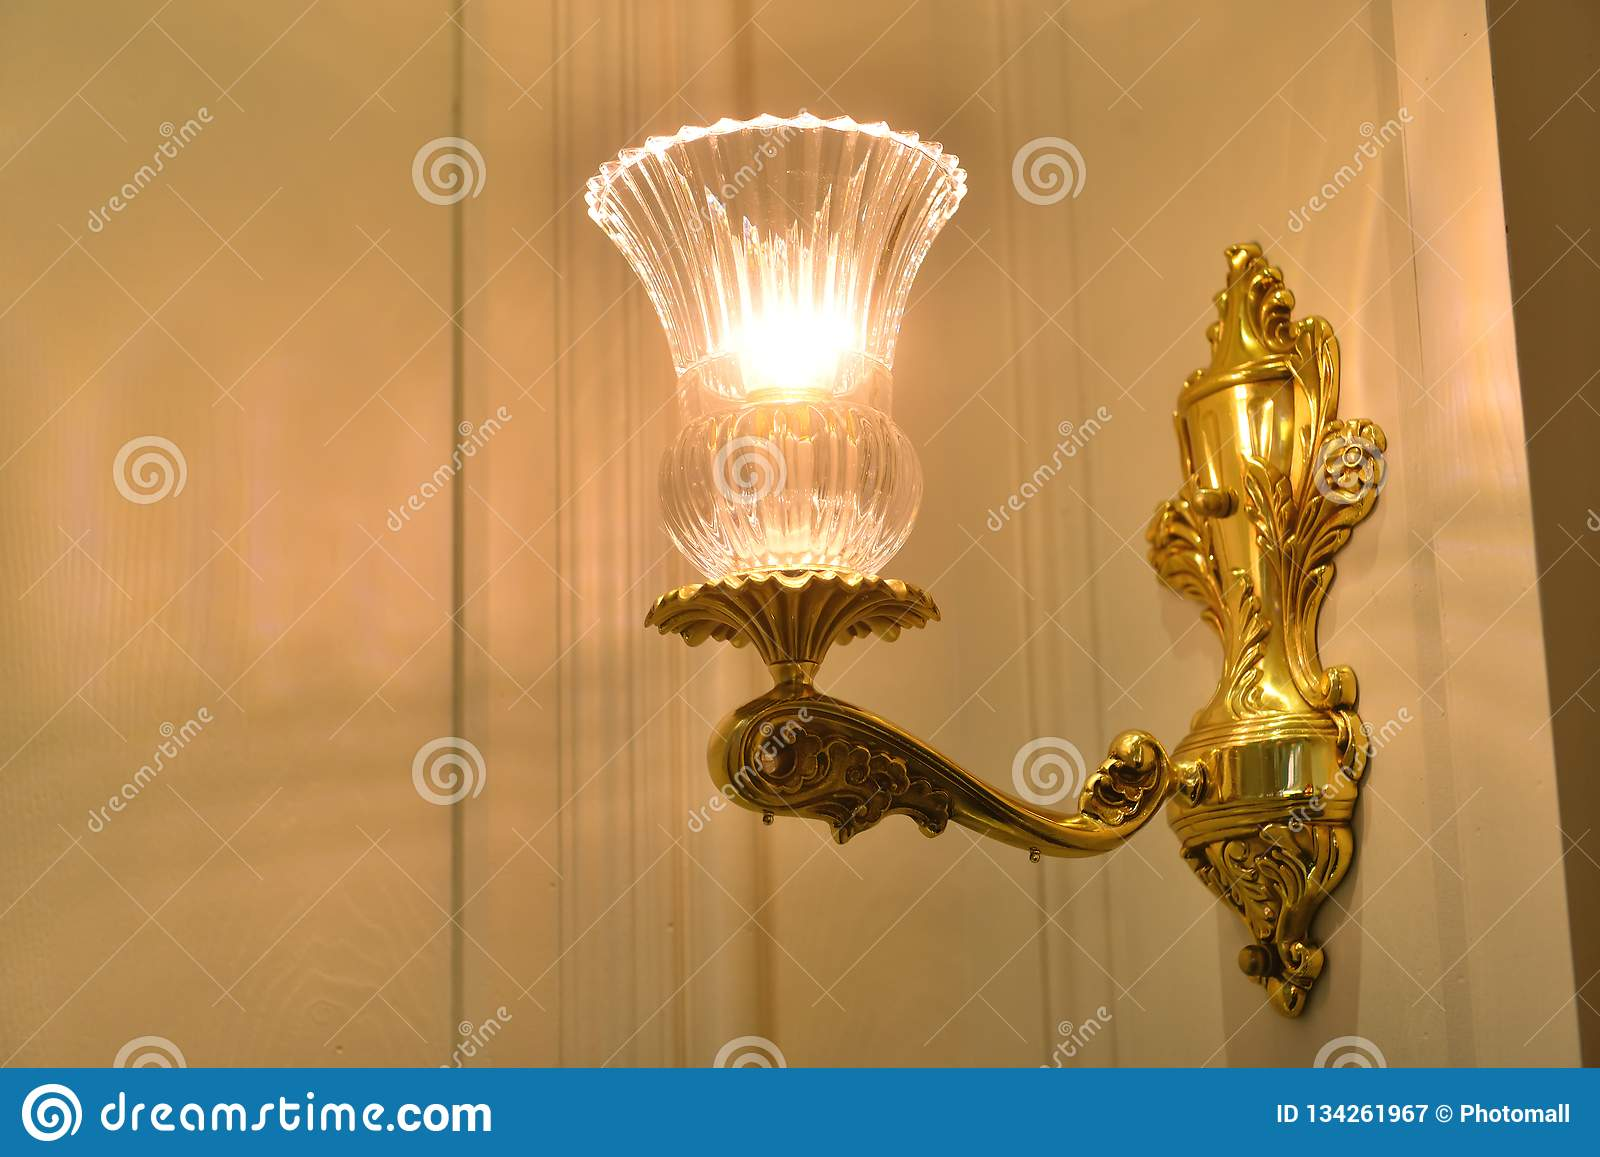 Wall Fitting Bracket Light Wall Lamp Stock Image Image Of Design Building 134261967